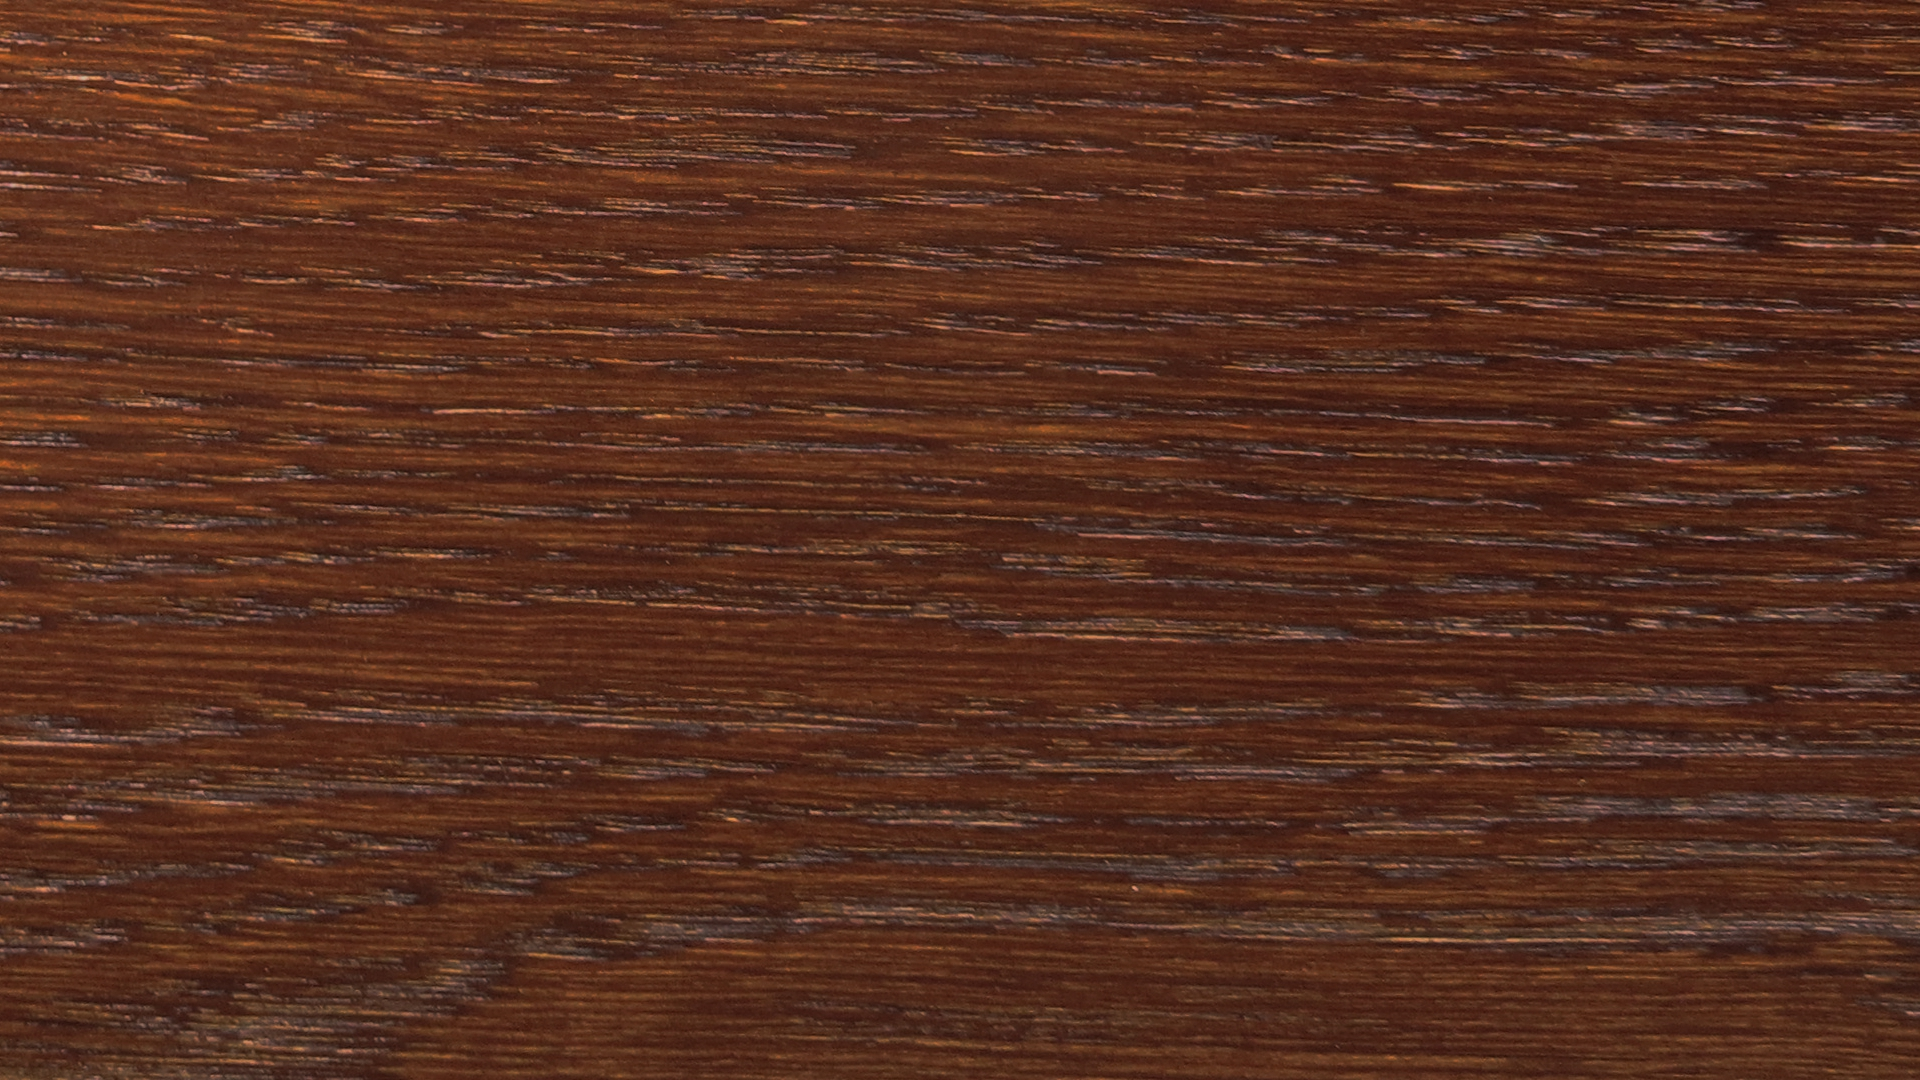 colorwood 19_57b7364edb788